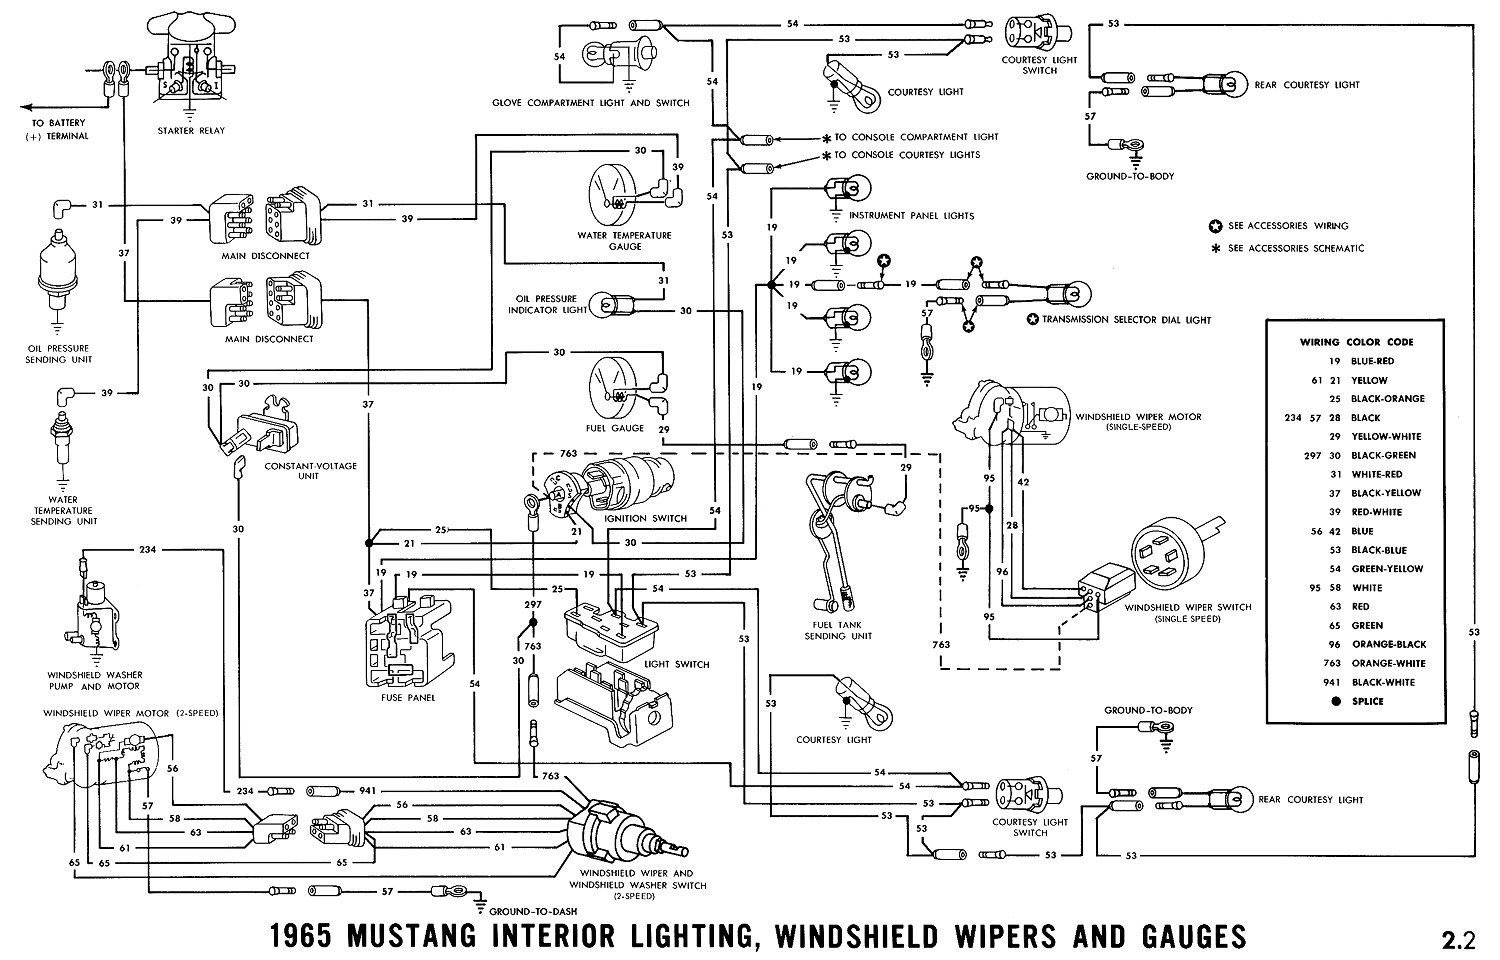 1965g 1965 mustang wiring diagrams average joe restoration mustang wiring diagrams at nearapp.co